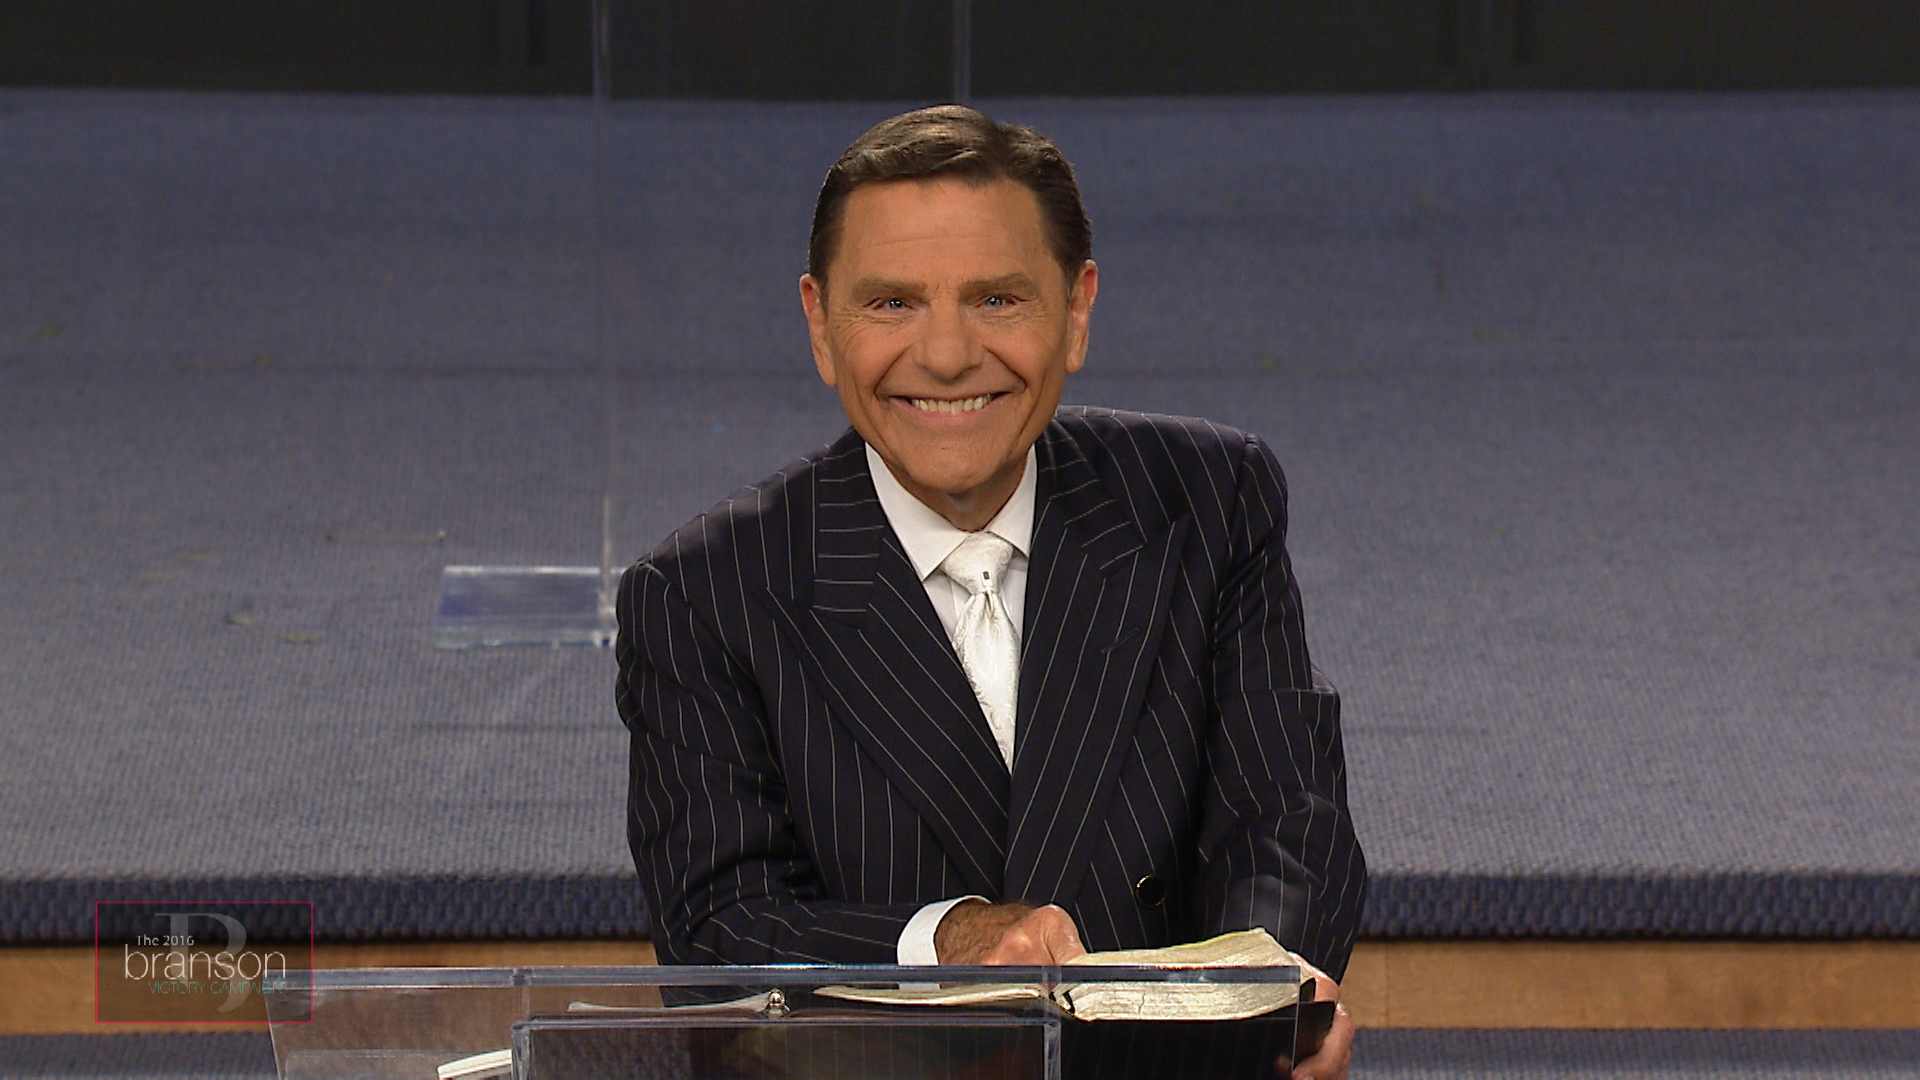 Be a part of the Thursday evening, opening session of the 2016 Branson Victory Campaign at Faith Life Church in Branson, Missouri. As you listen to Kenneth Copeland share this encouraging message on faith, let your own personal faith be strengthened and uplifted.